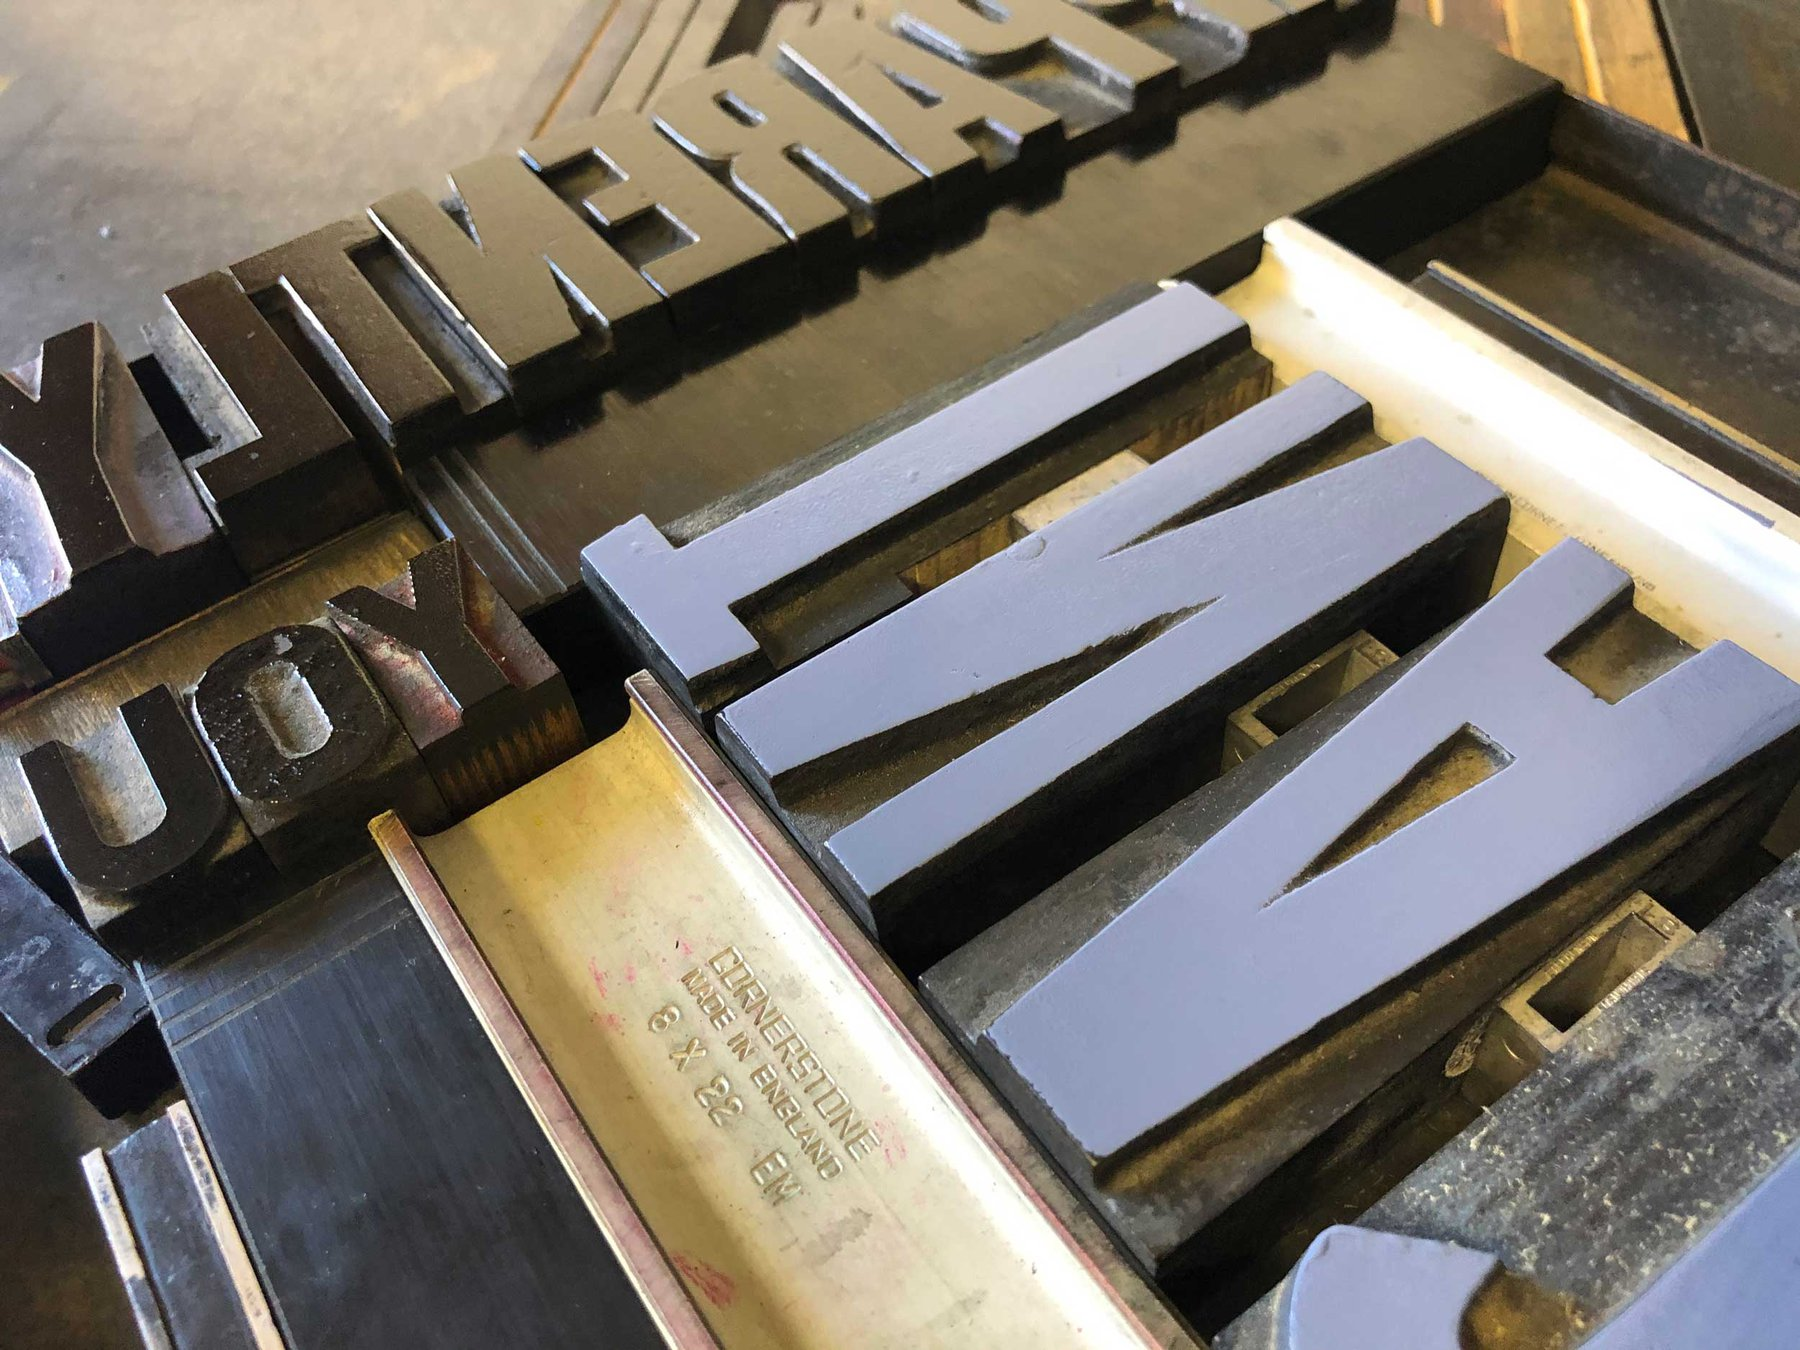 Ayesha-Jarratt-Inked-Letterpress!-Work-Placement.jpg